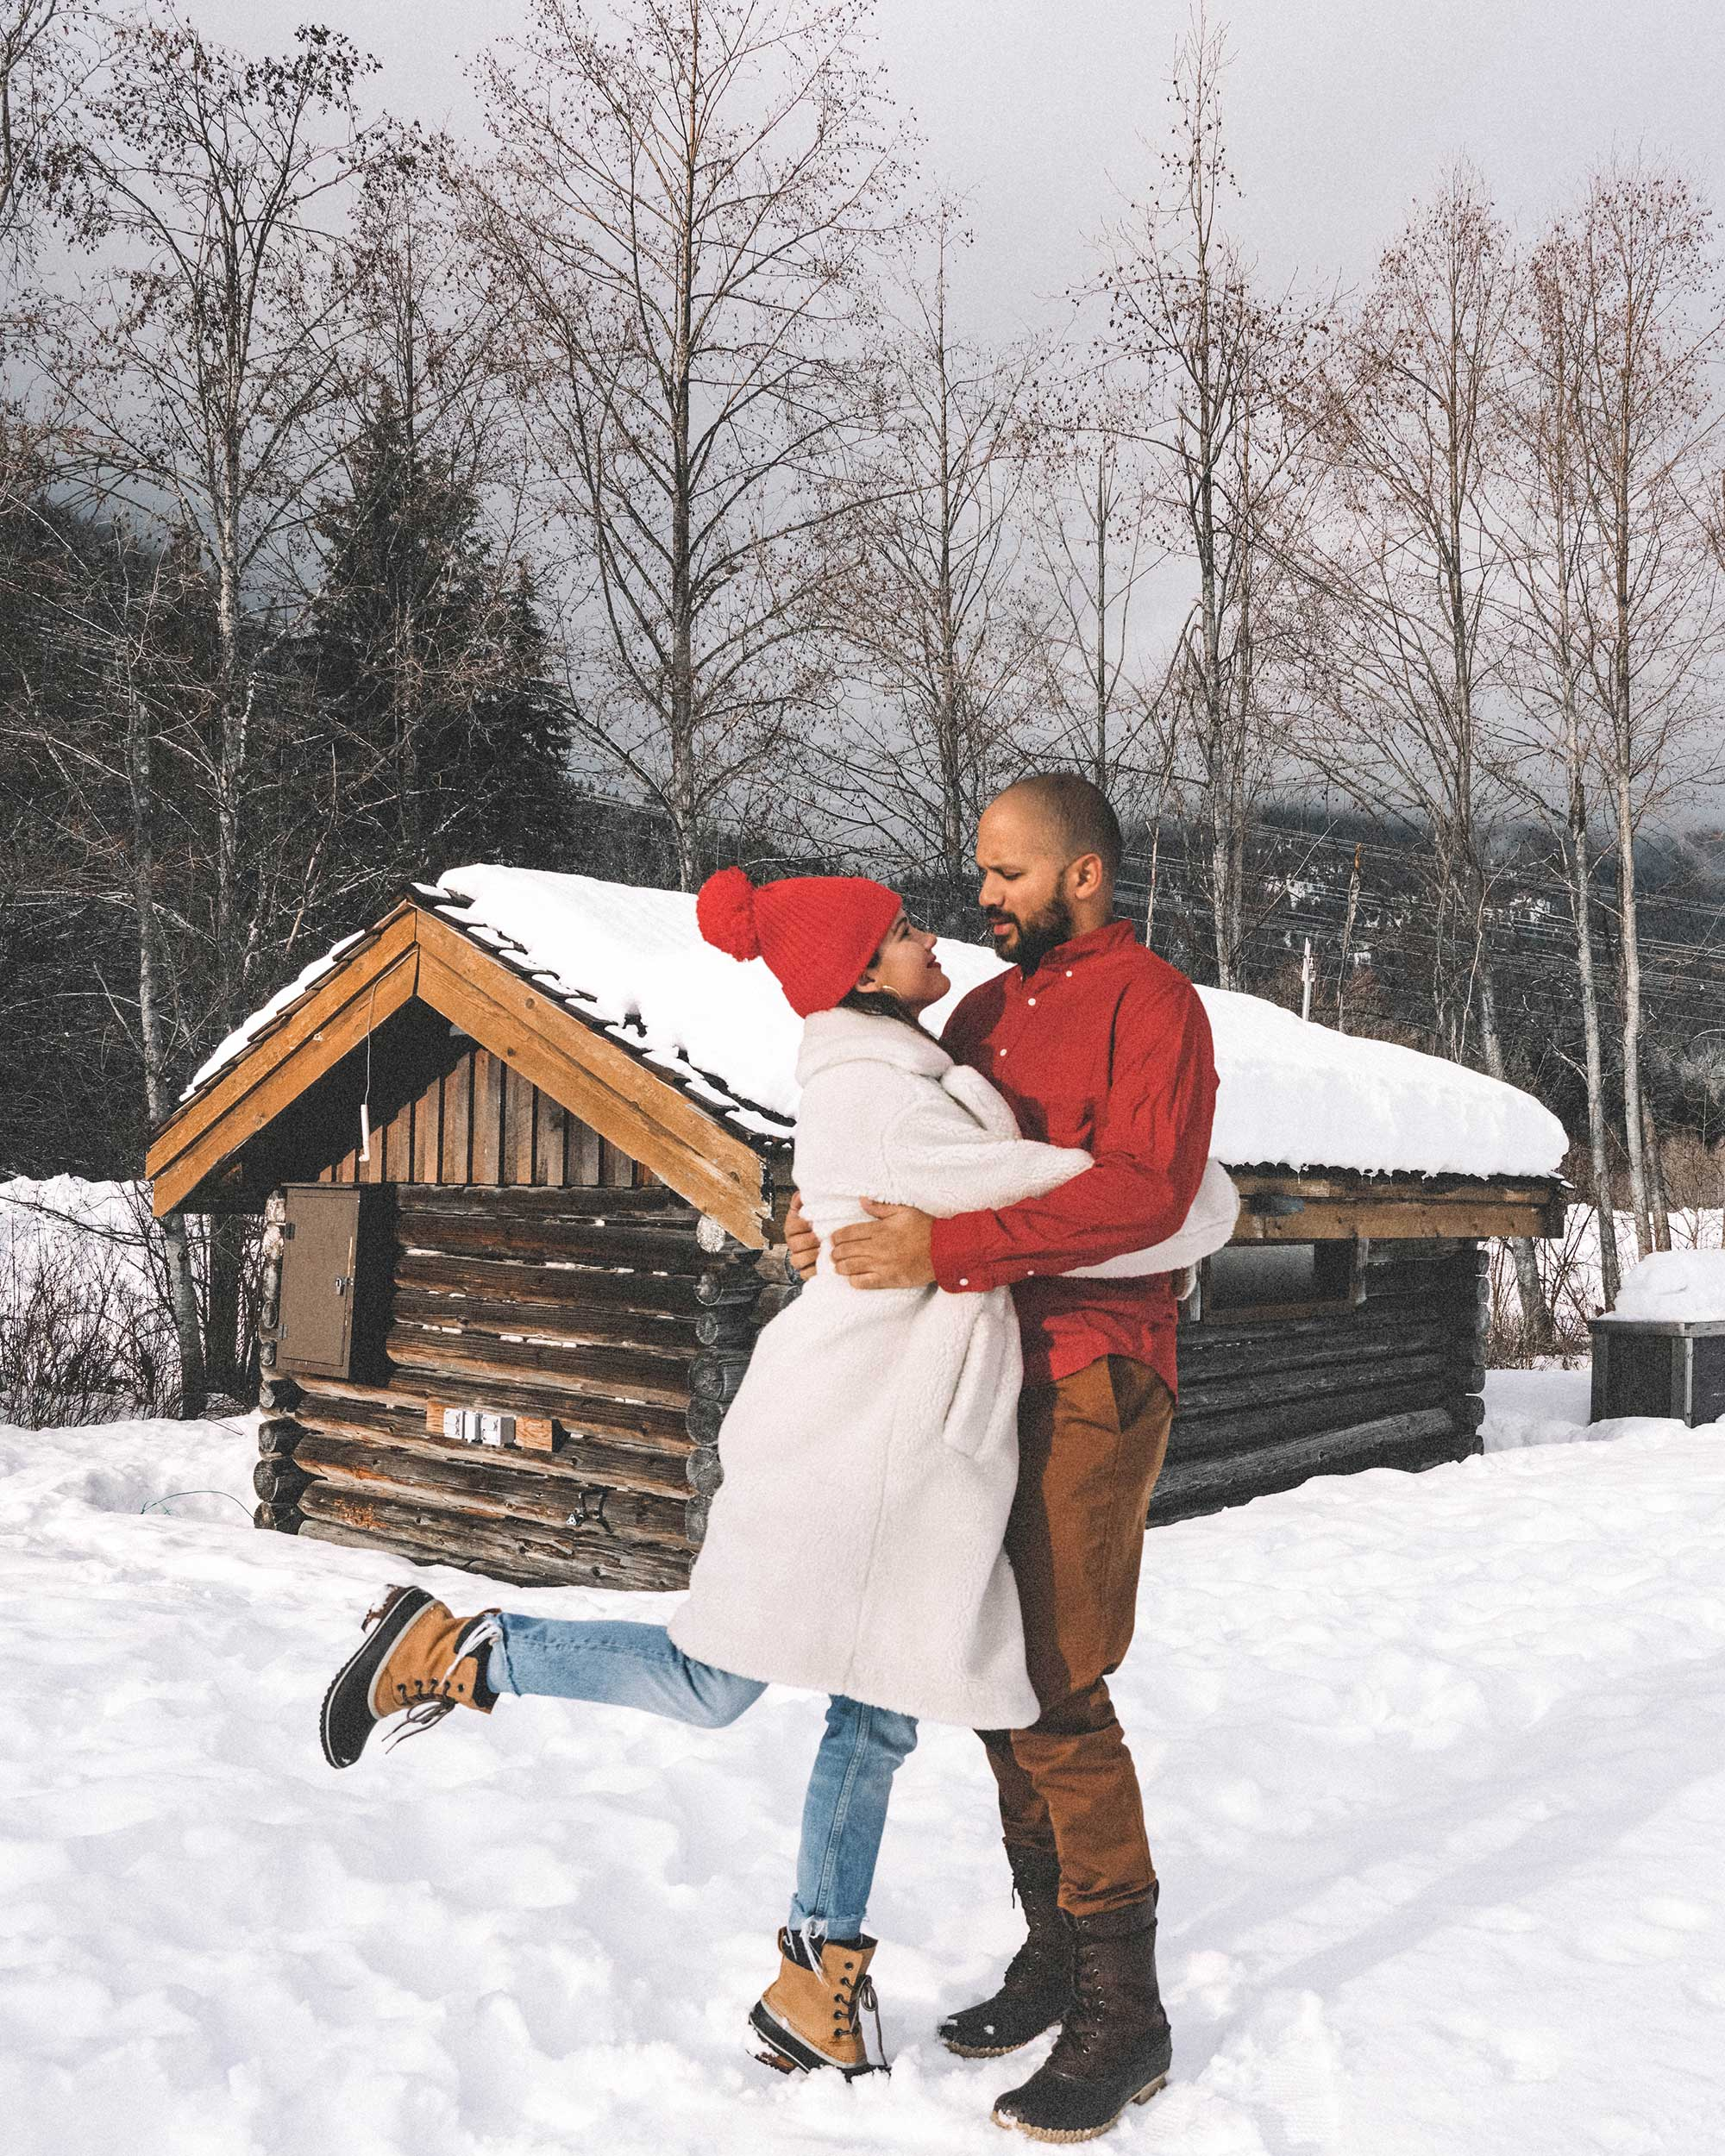 couples Winter snow outfit white faux shearling coat and sorel boots with jeans whislter canada.jpg